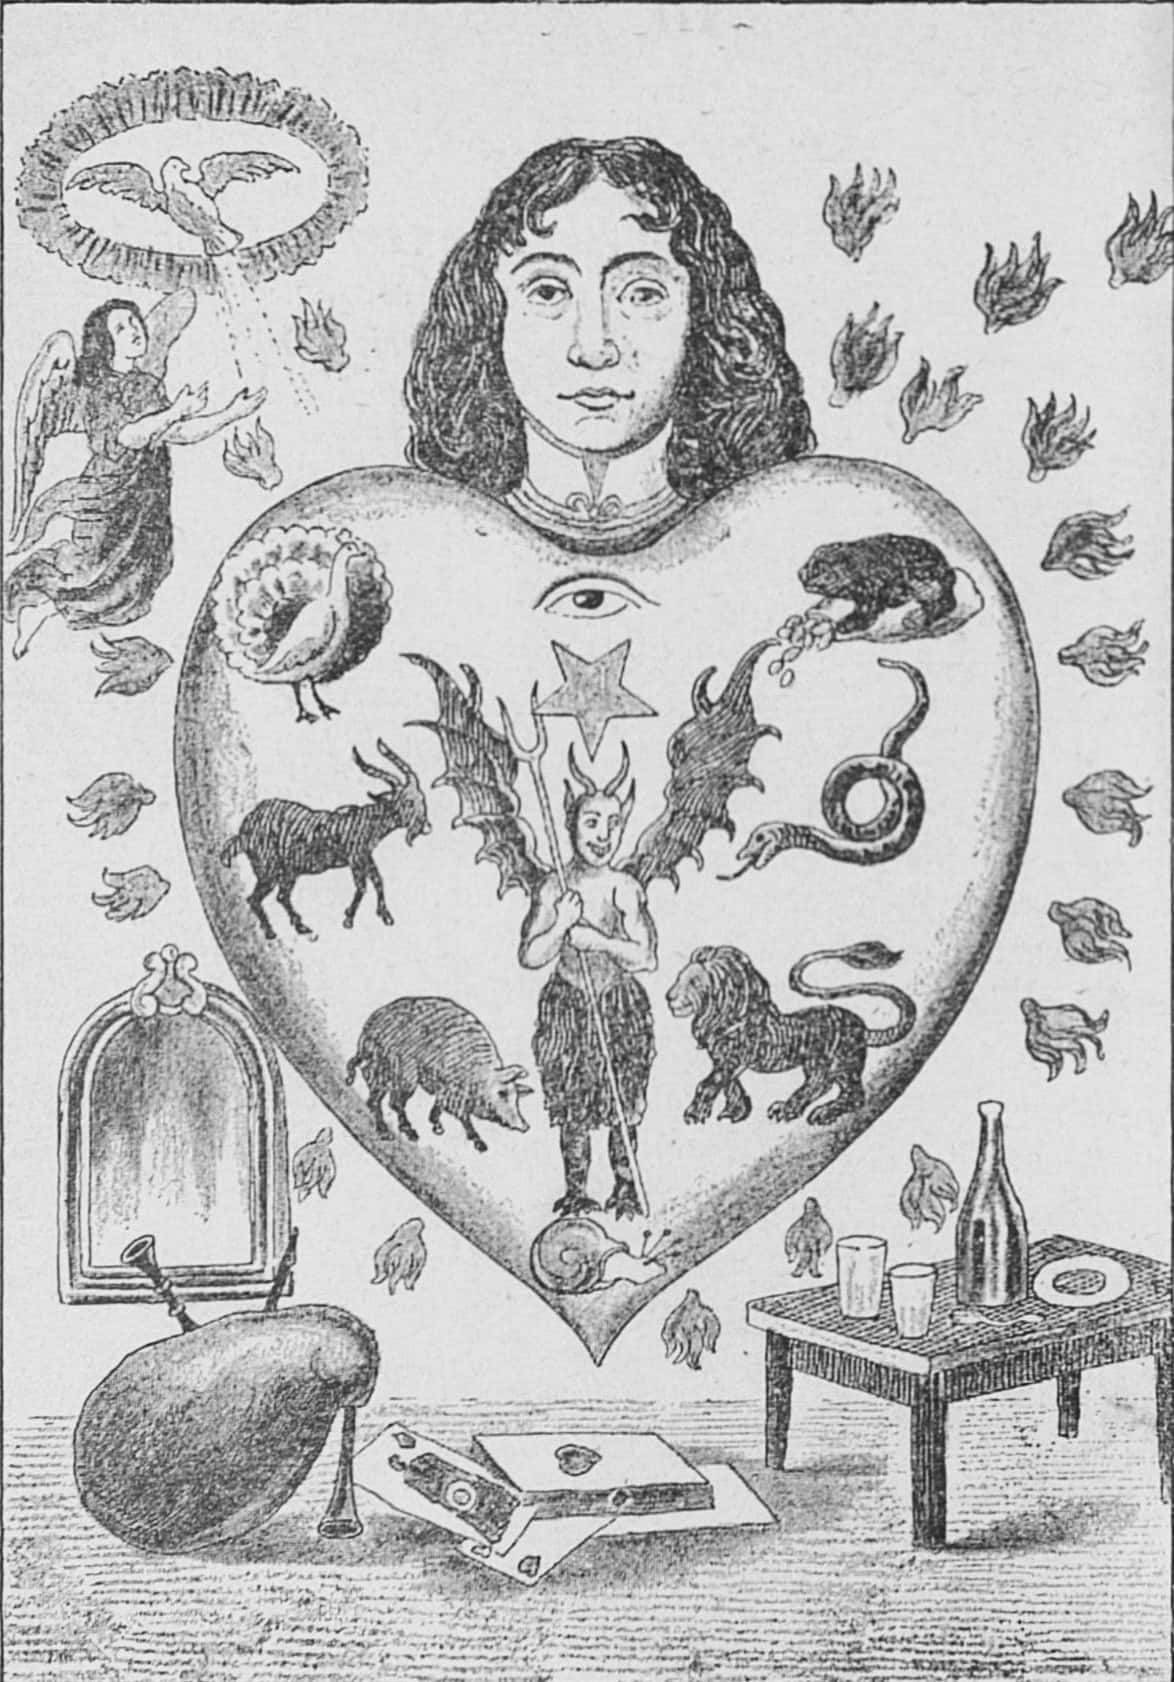 An allegorical image depicting the human heart subject to the seven deadly sins